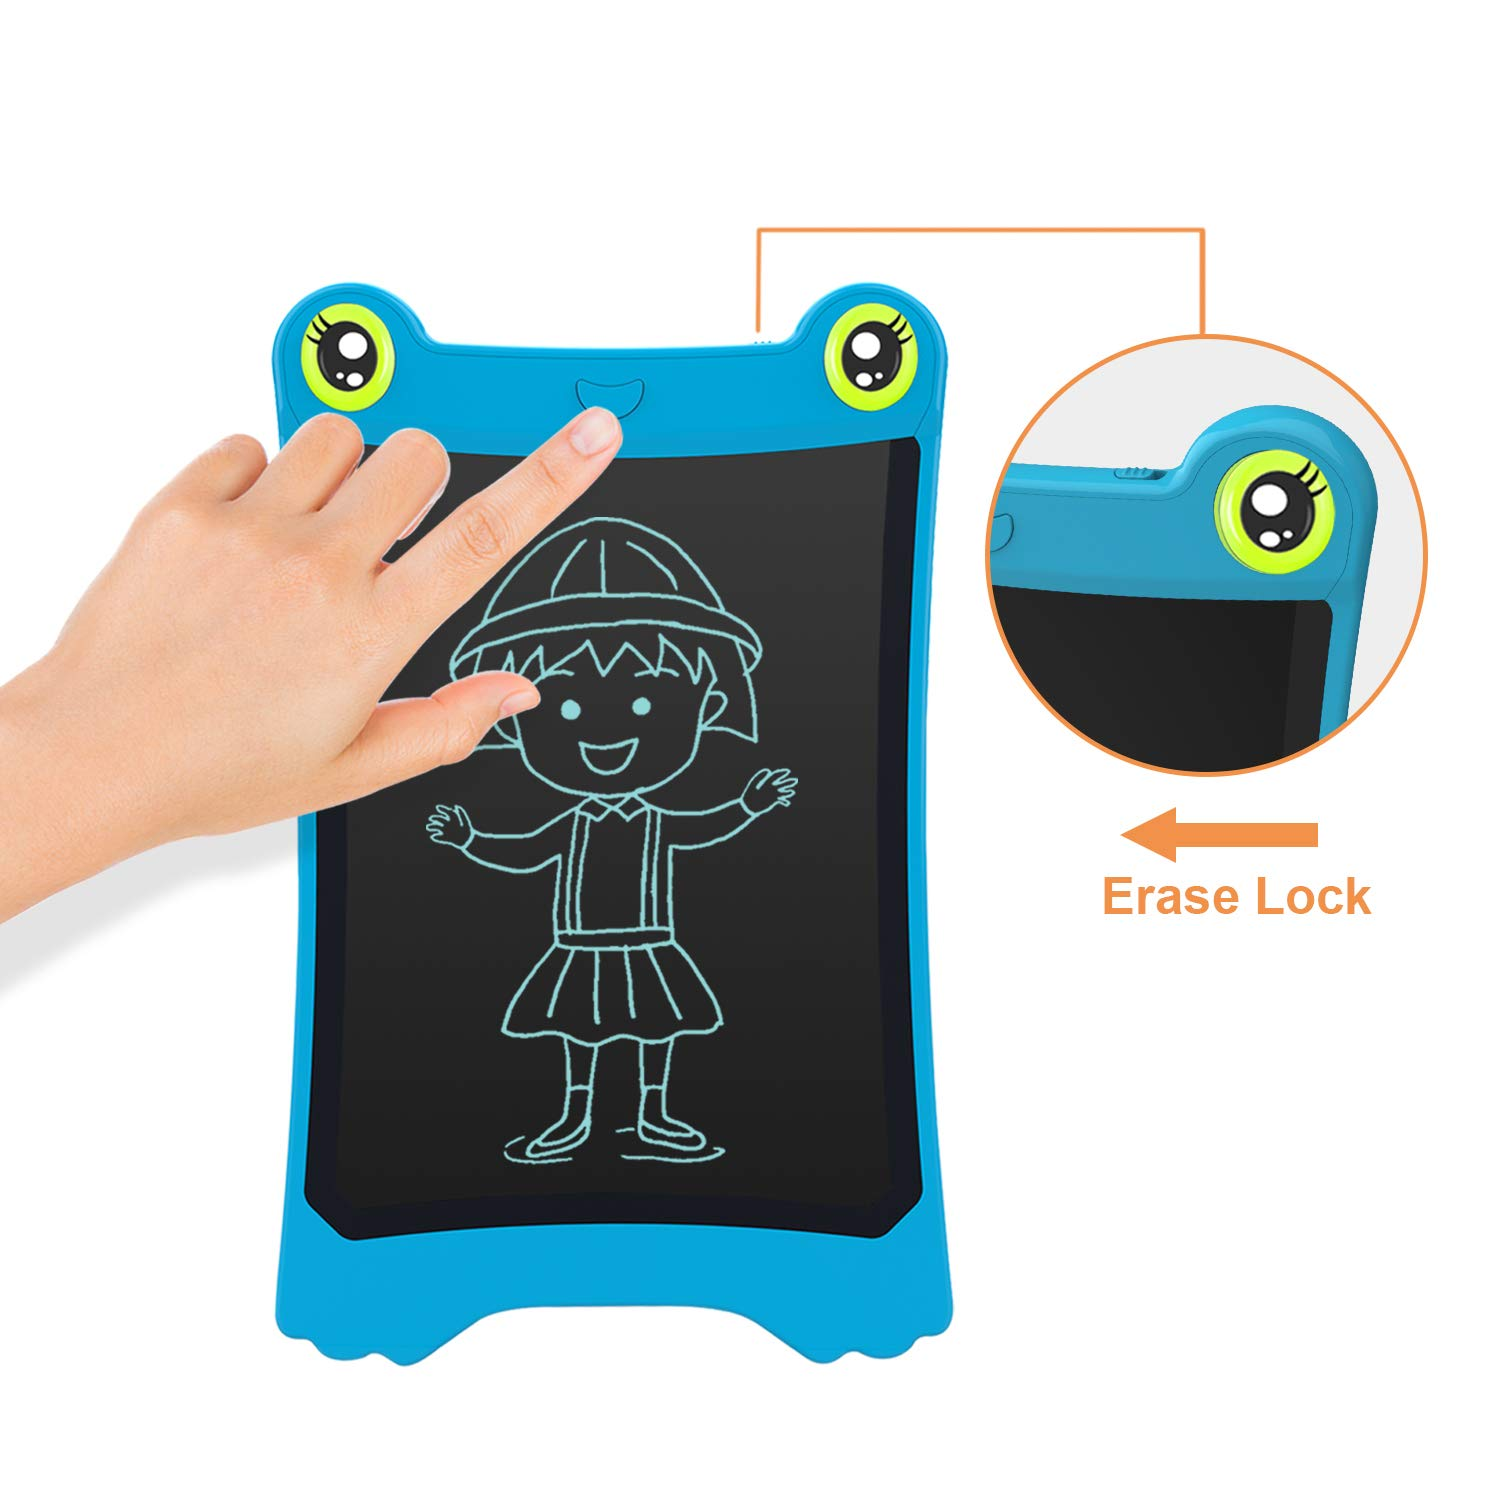 NEWYES 8.5 Inch LCD Writing Tablet Updated Frog Pad Children Electronic Doodle Board Jot Digital E-Writer Kids Scribble Toy with Lock Function Blue by NEWYES (Image #5)